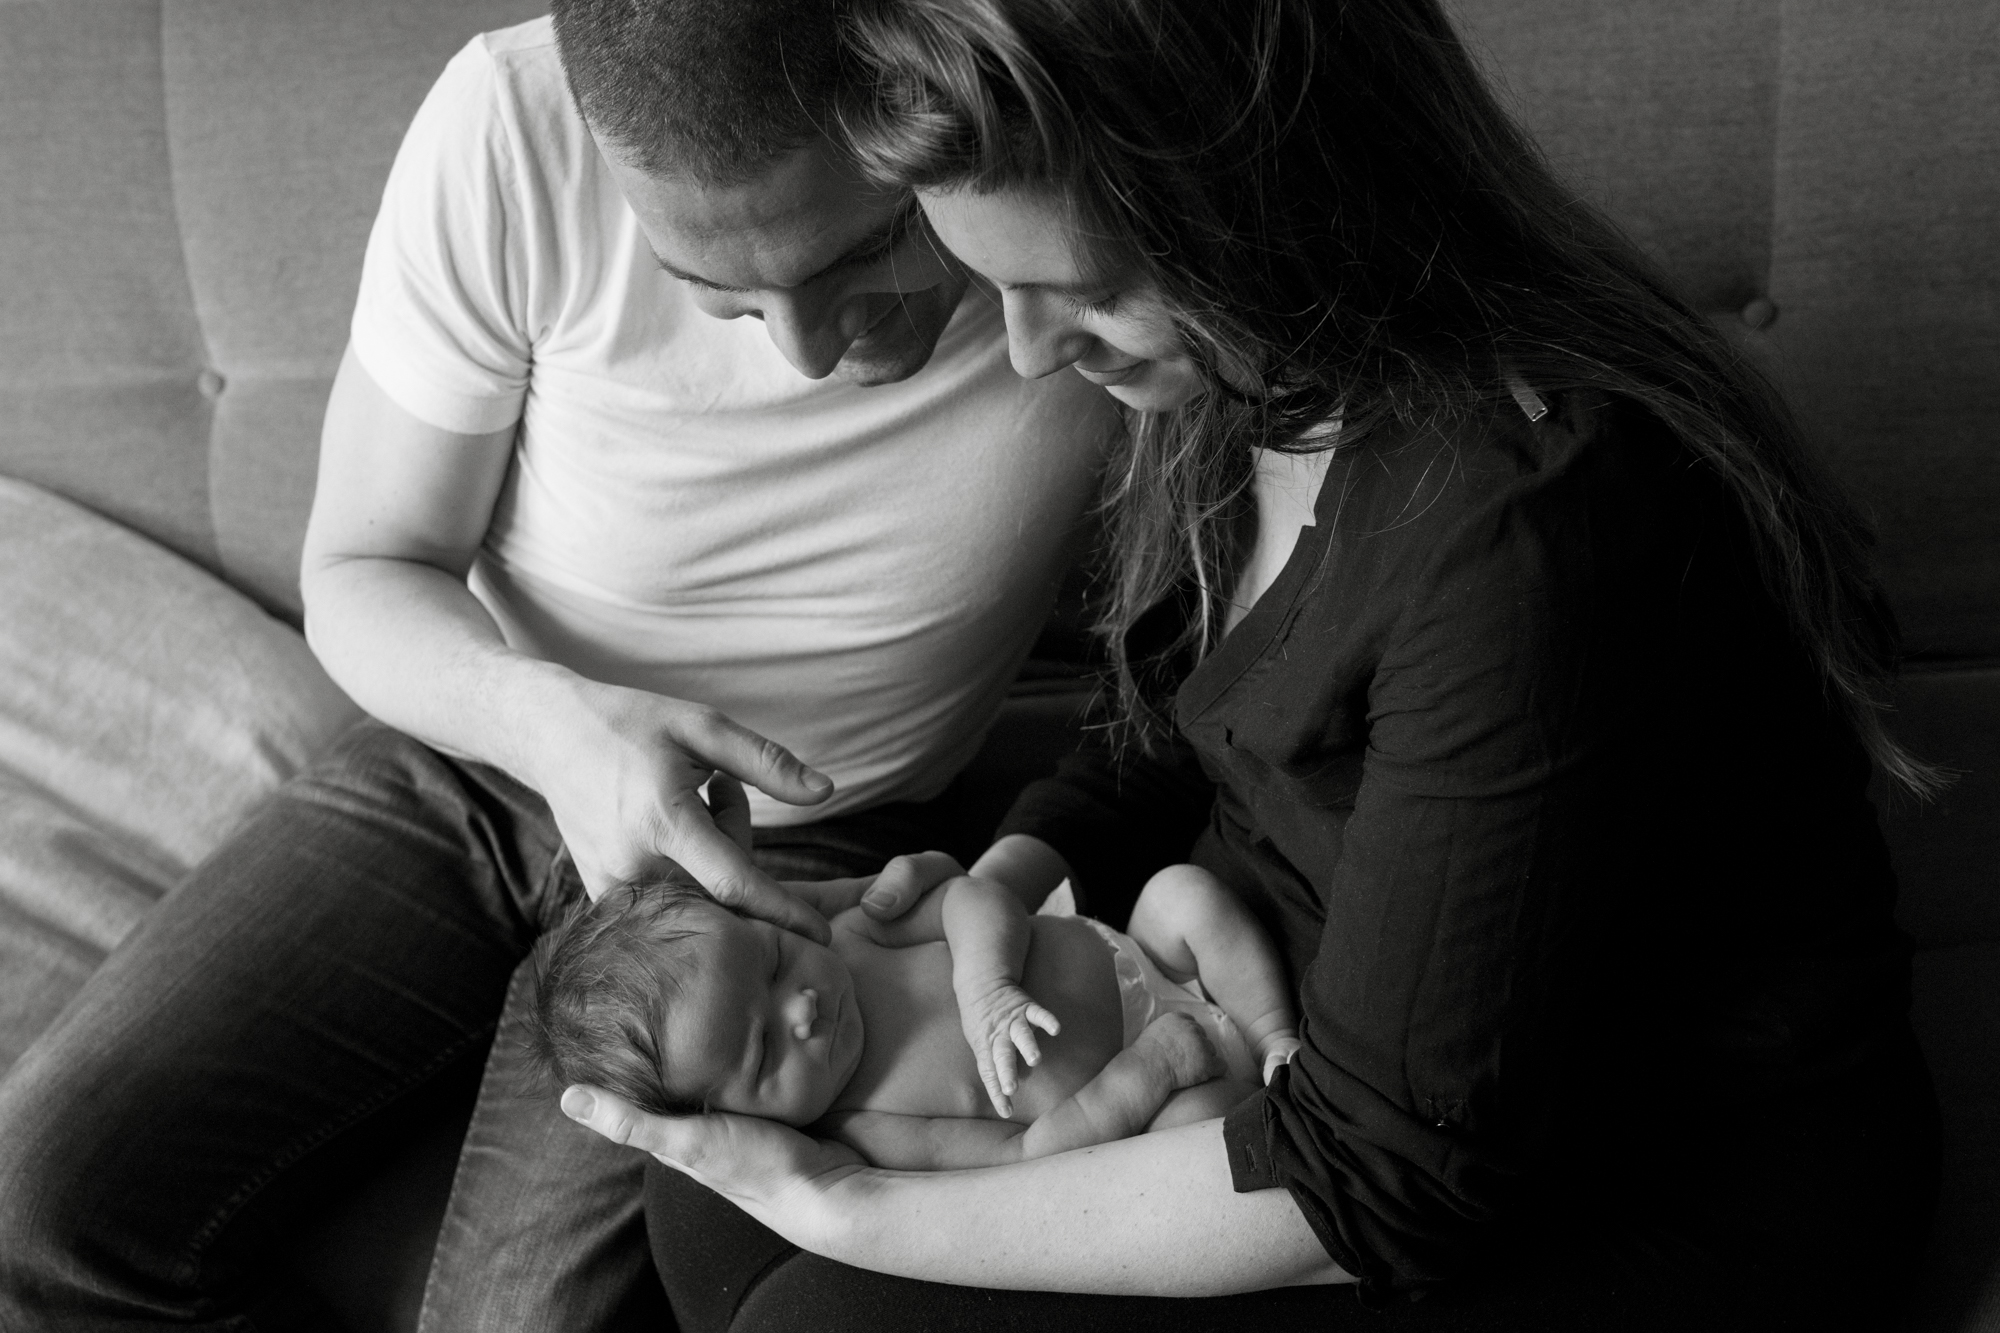 Newborn baby & family portraits, Marylebone, London London Children Photography